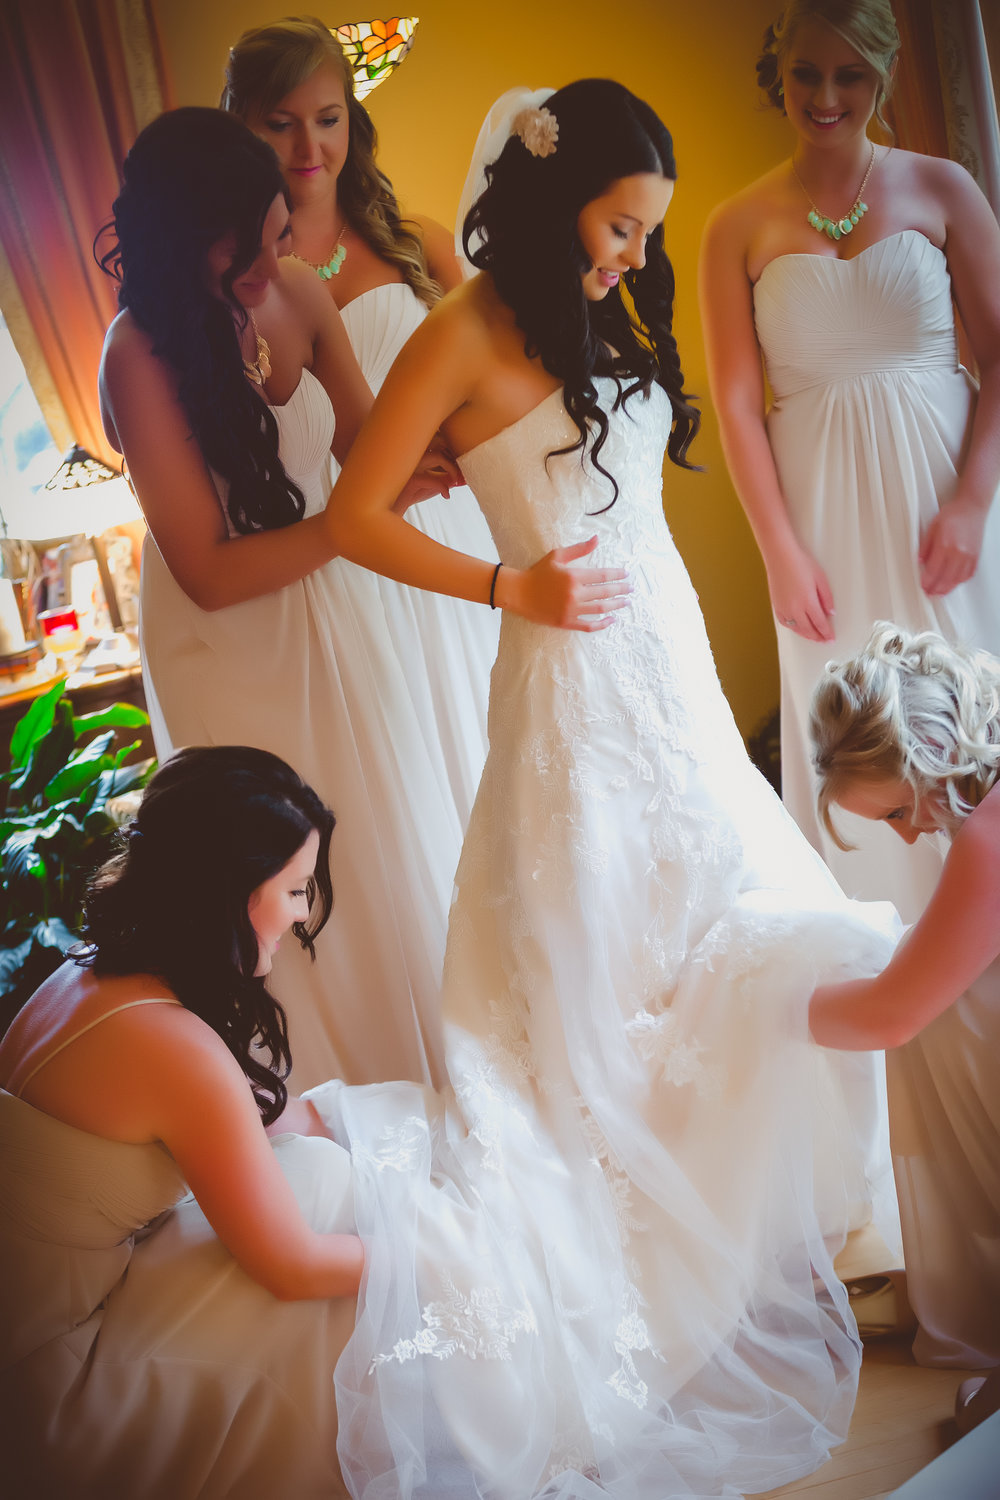 September 13, 2014 Shayne-Charmaye Wedding 280-Edit-Edit.JPG